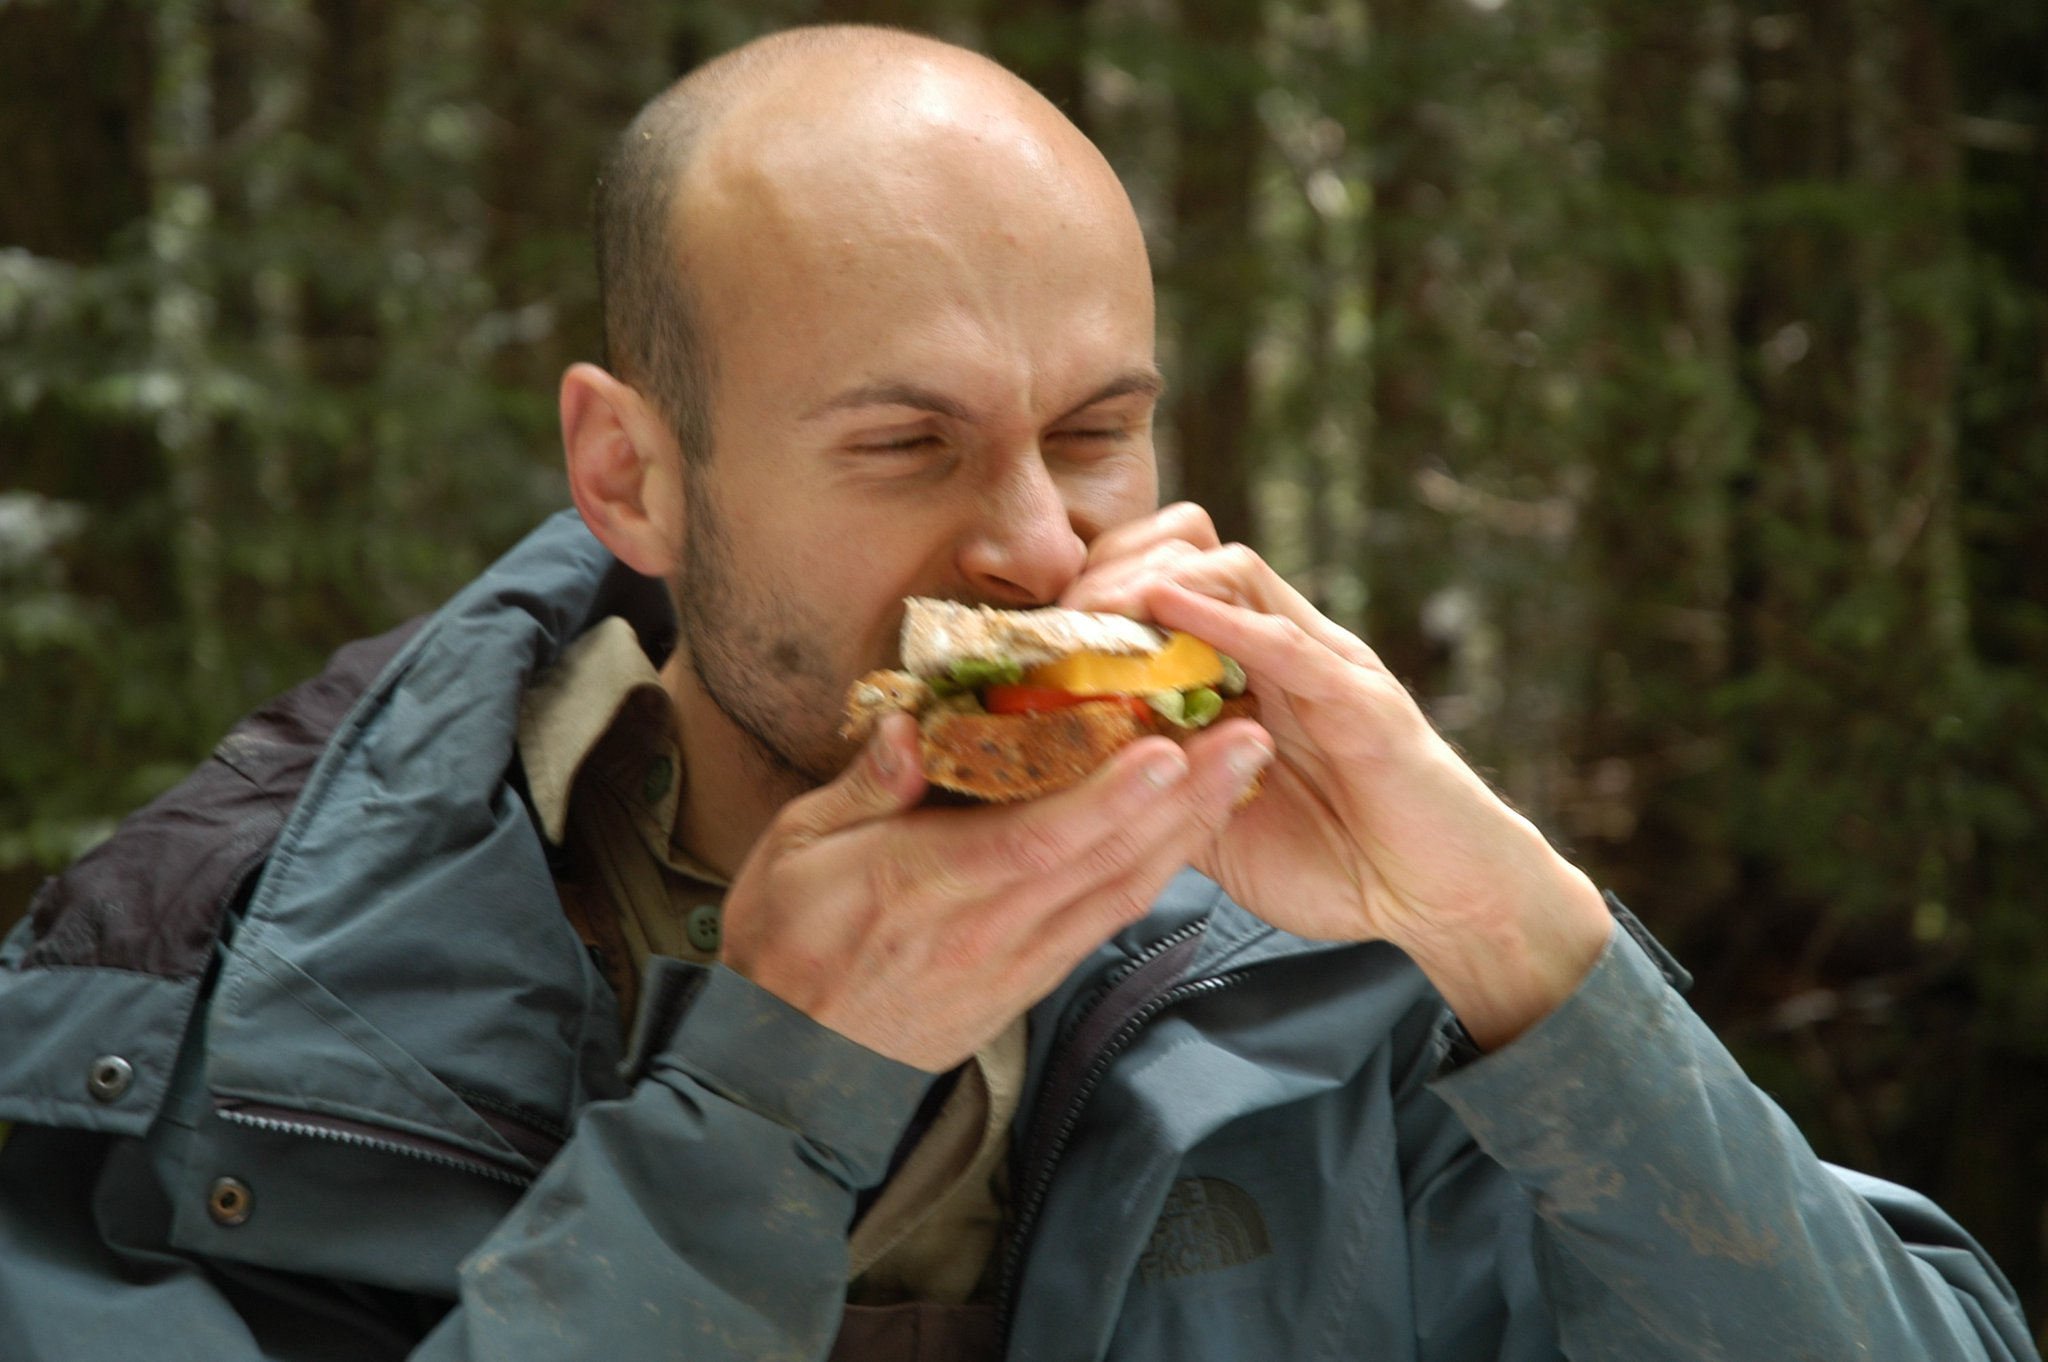 In appreciation of my goofy colleagues 22: How to eat a sandwich by Daniel Berner. https://t.co/HQj8IeX12J